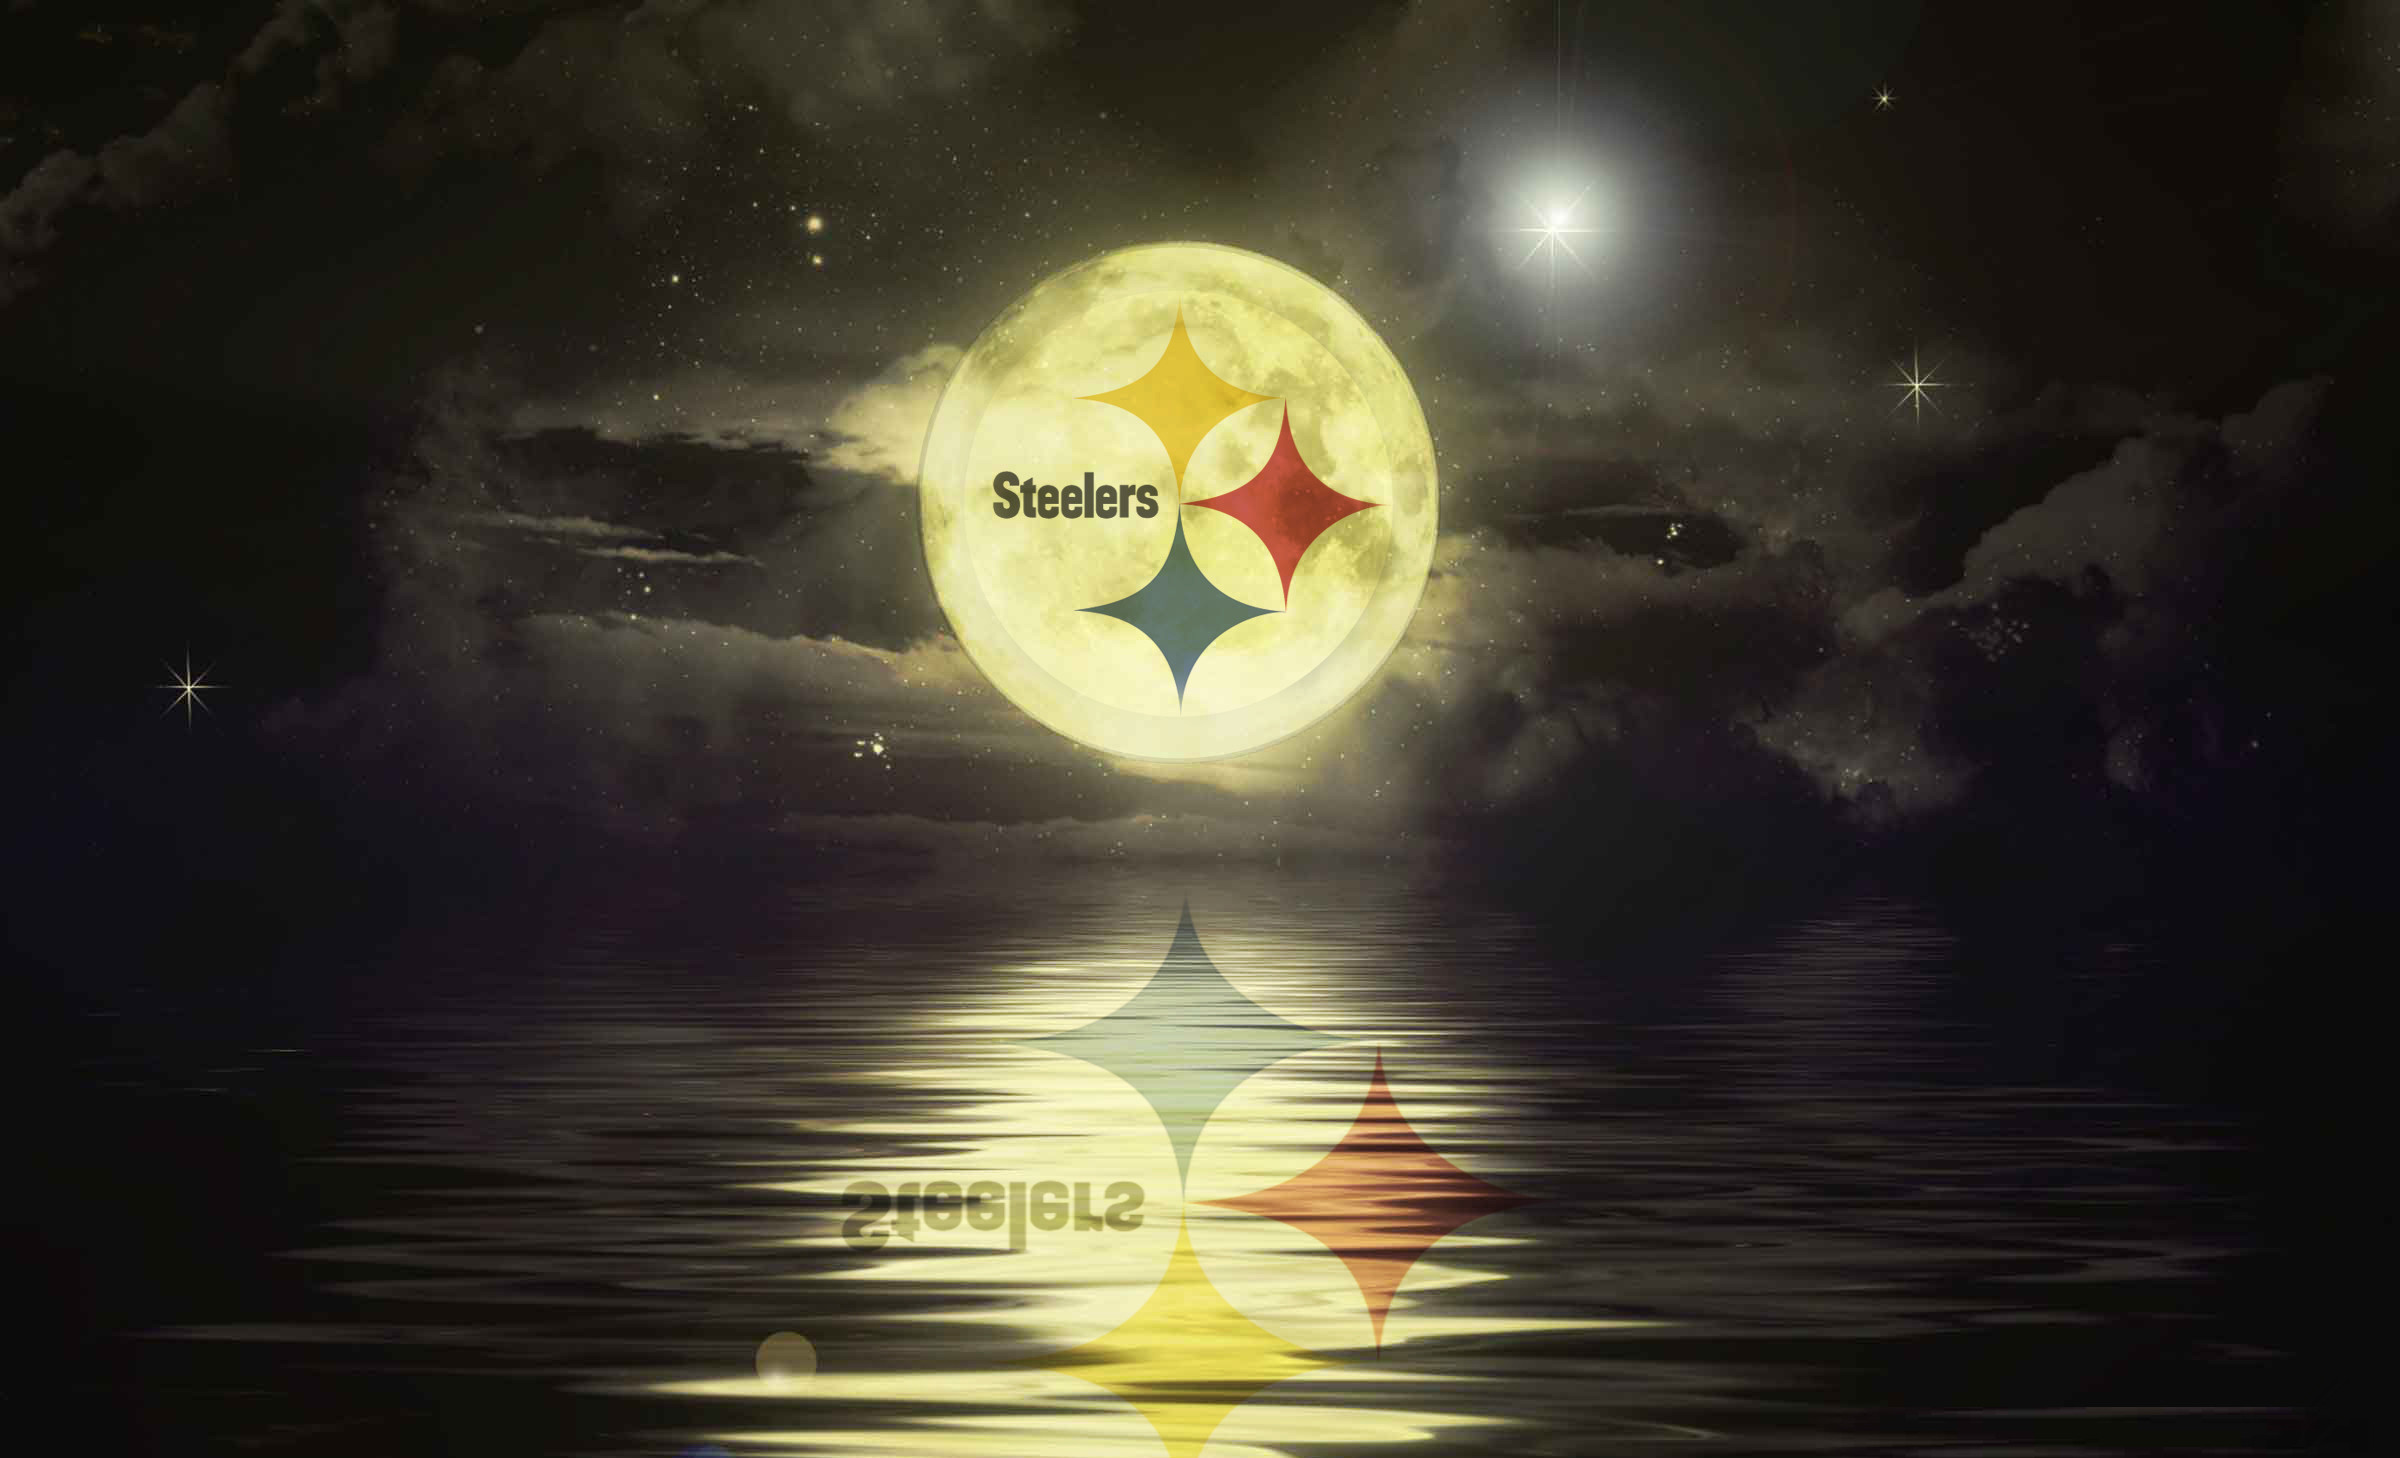 Steelers Live Wallpapers (59+ images)